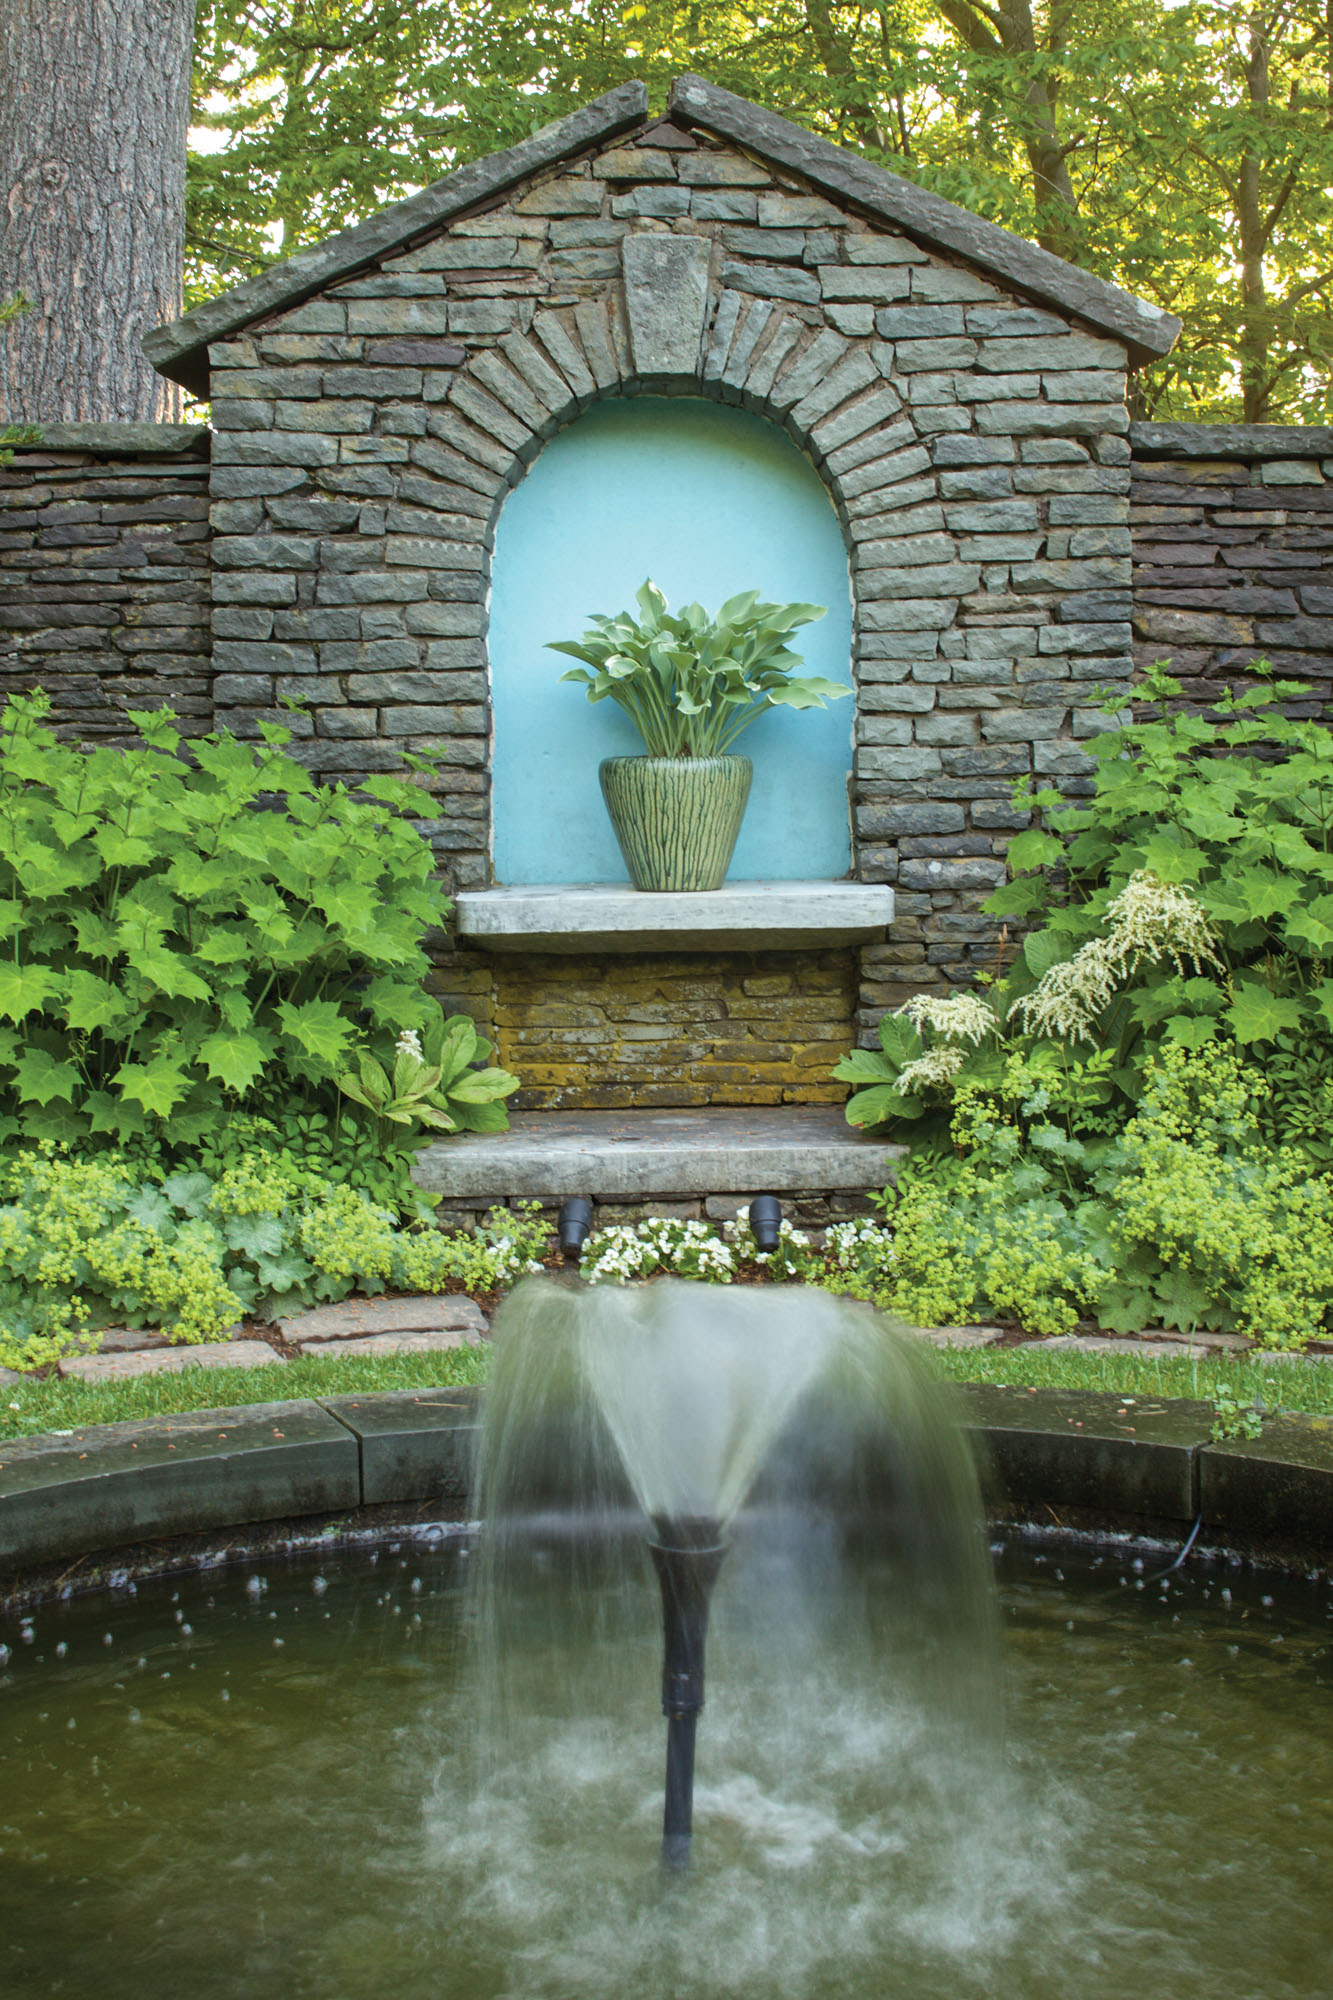 A fountain was added to the existing pool at one end of the sunken garden.